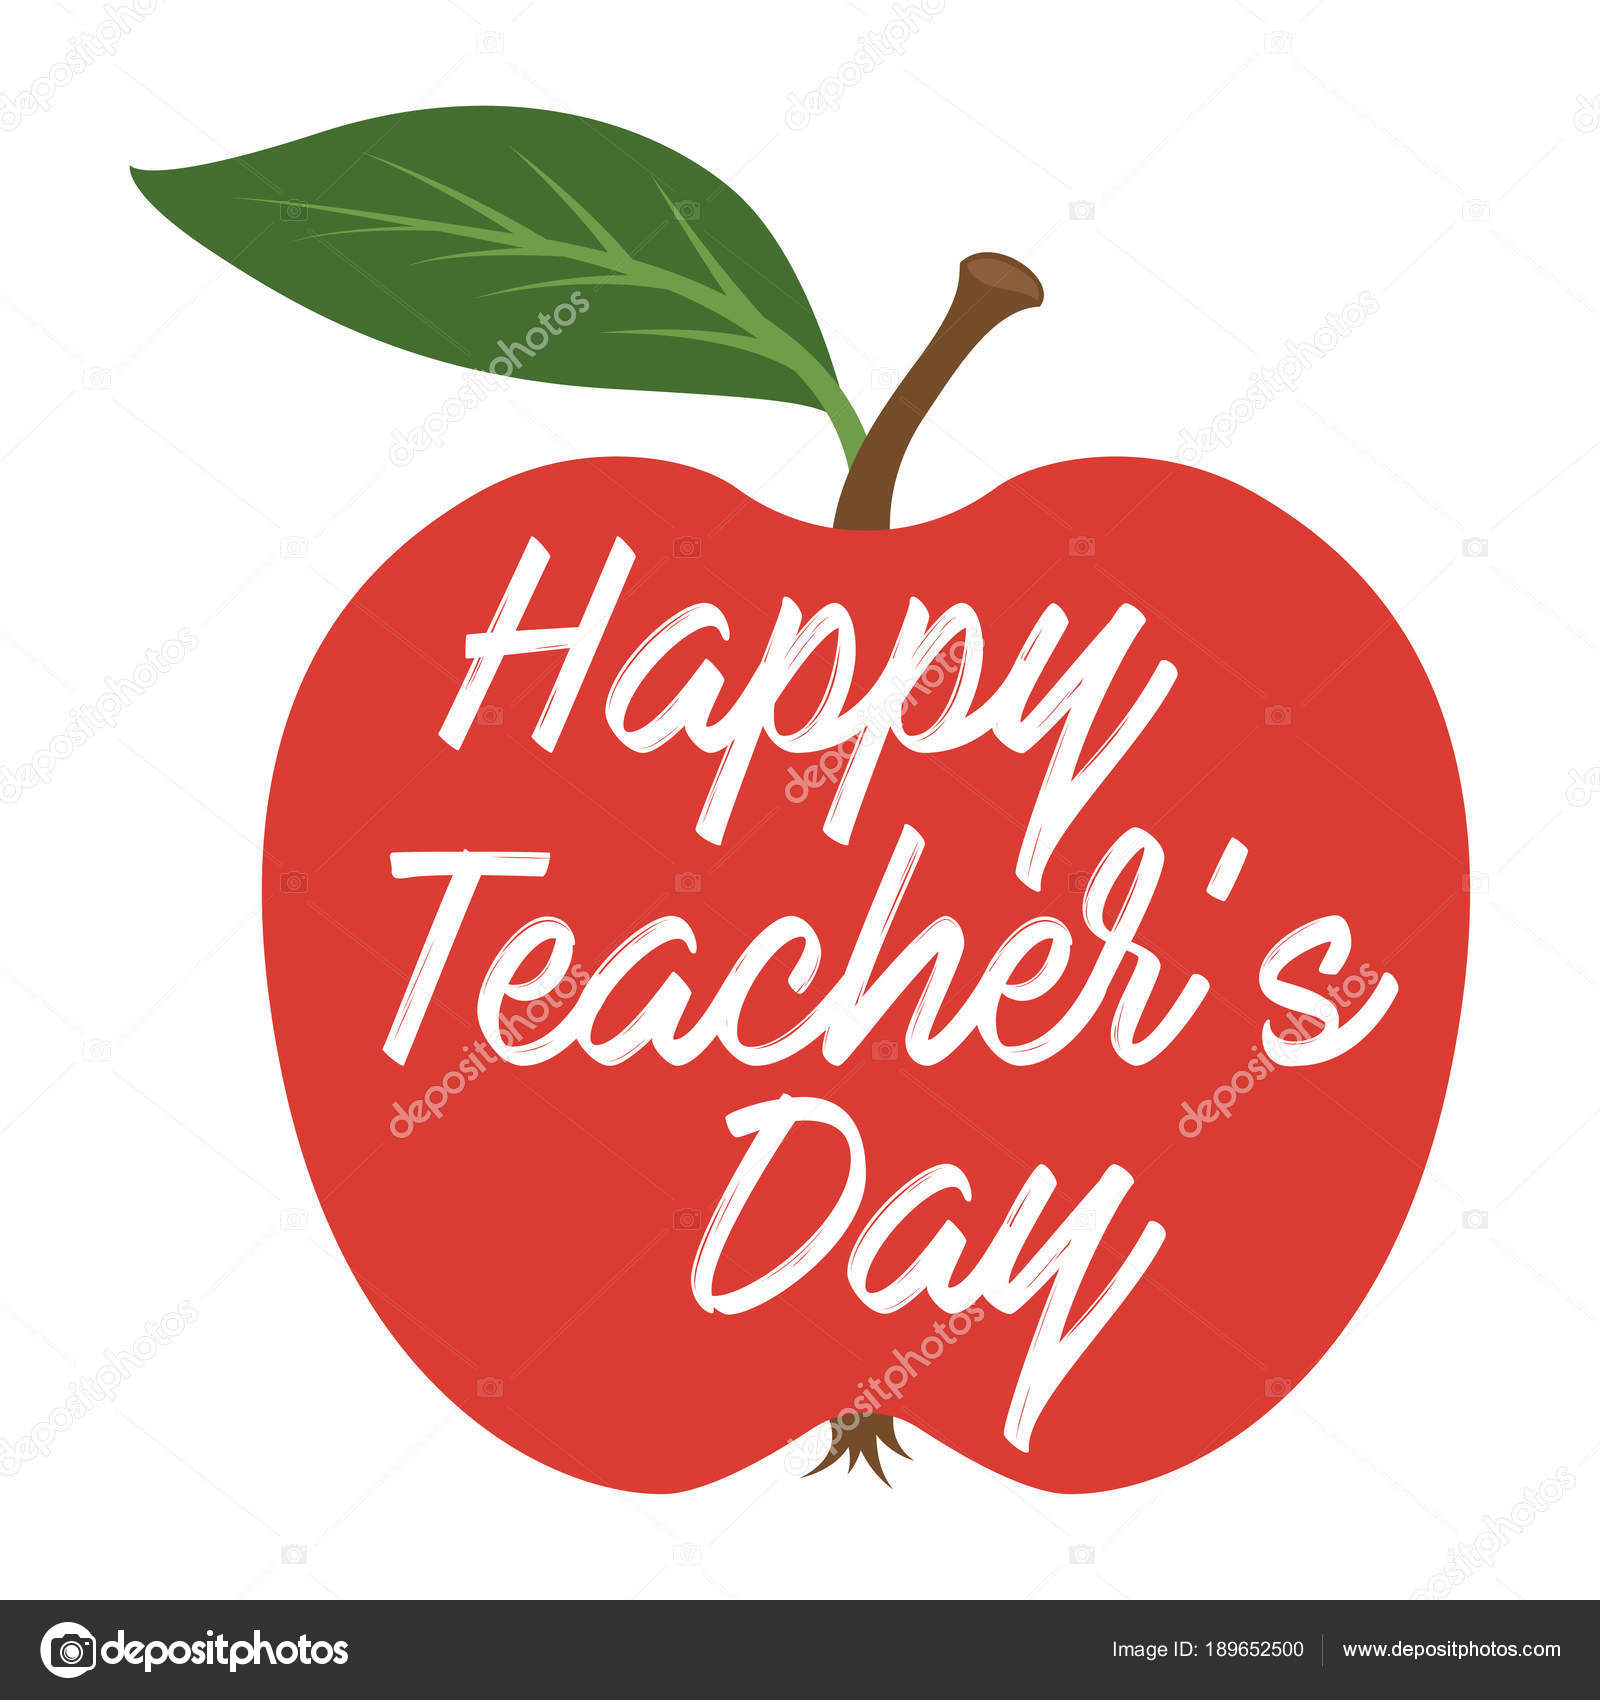 Happy teachers day greeting card stock vector makc76 189652500 happy teachers day greeting card stock vector kristyandbryce Choice Image